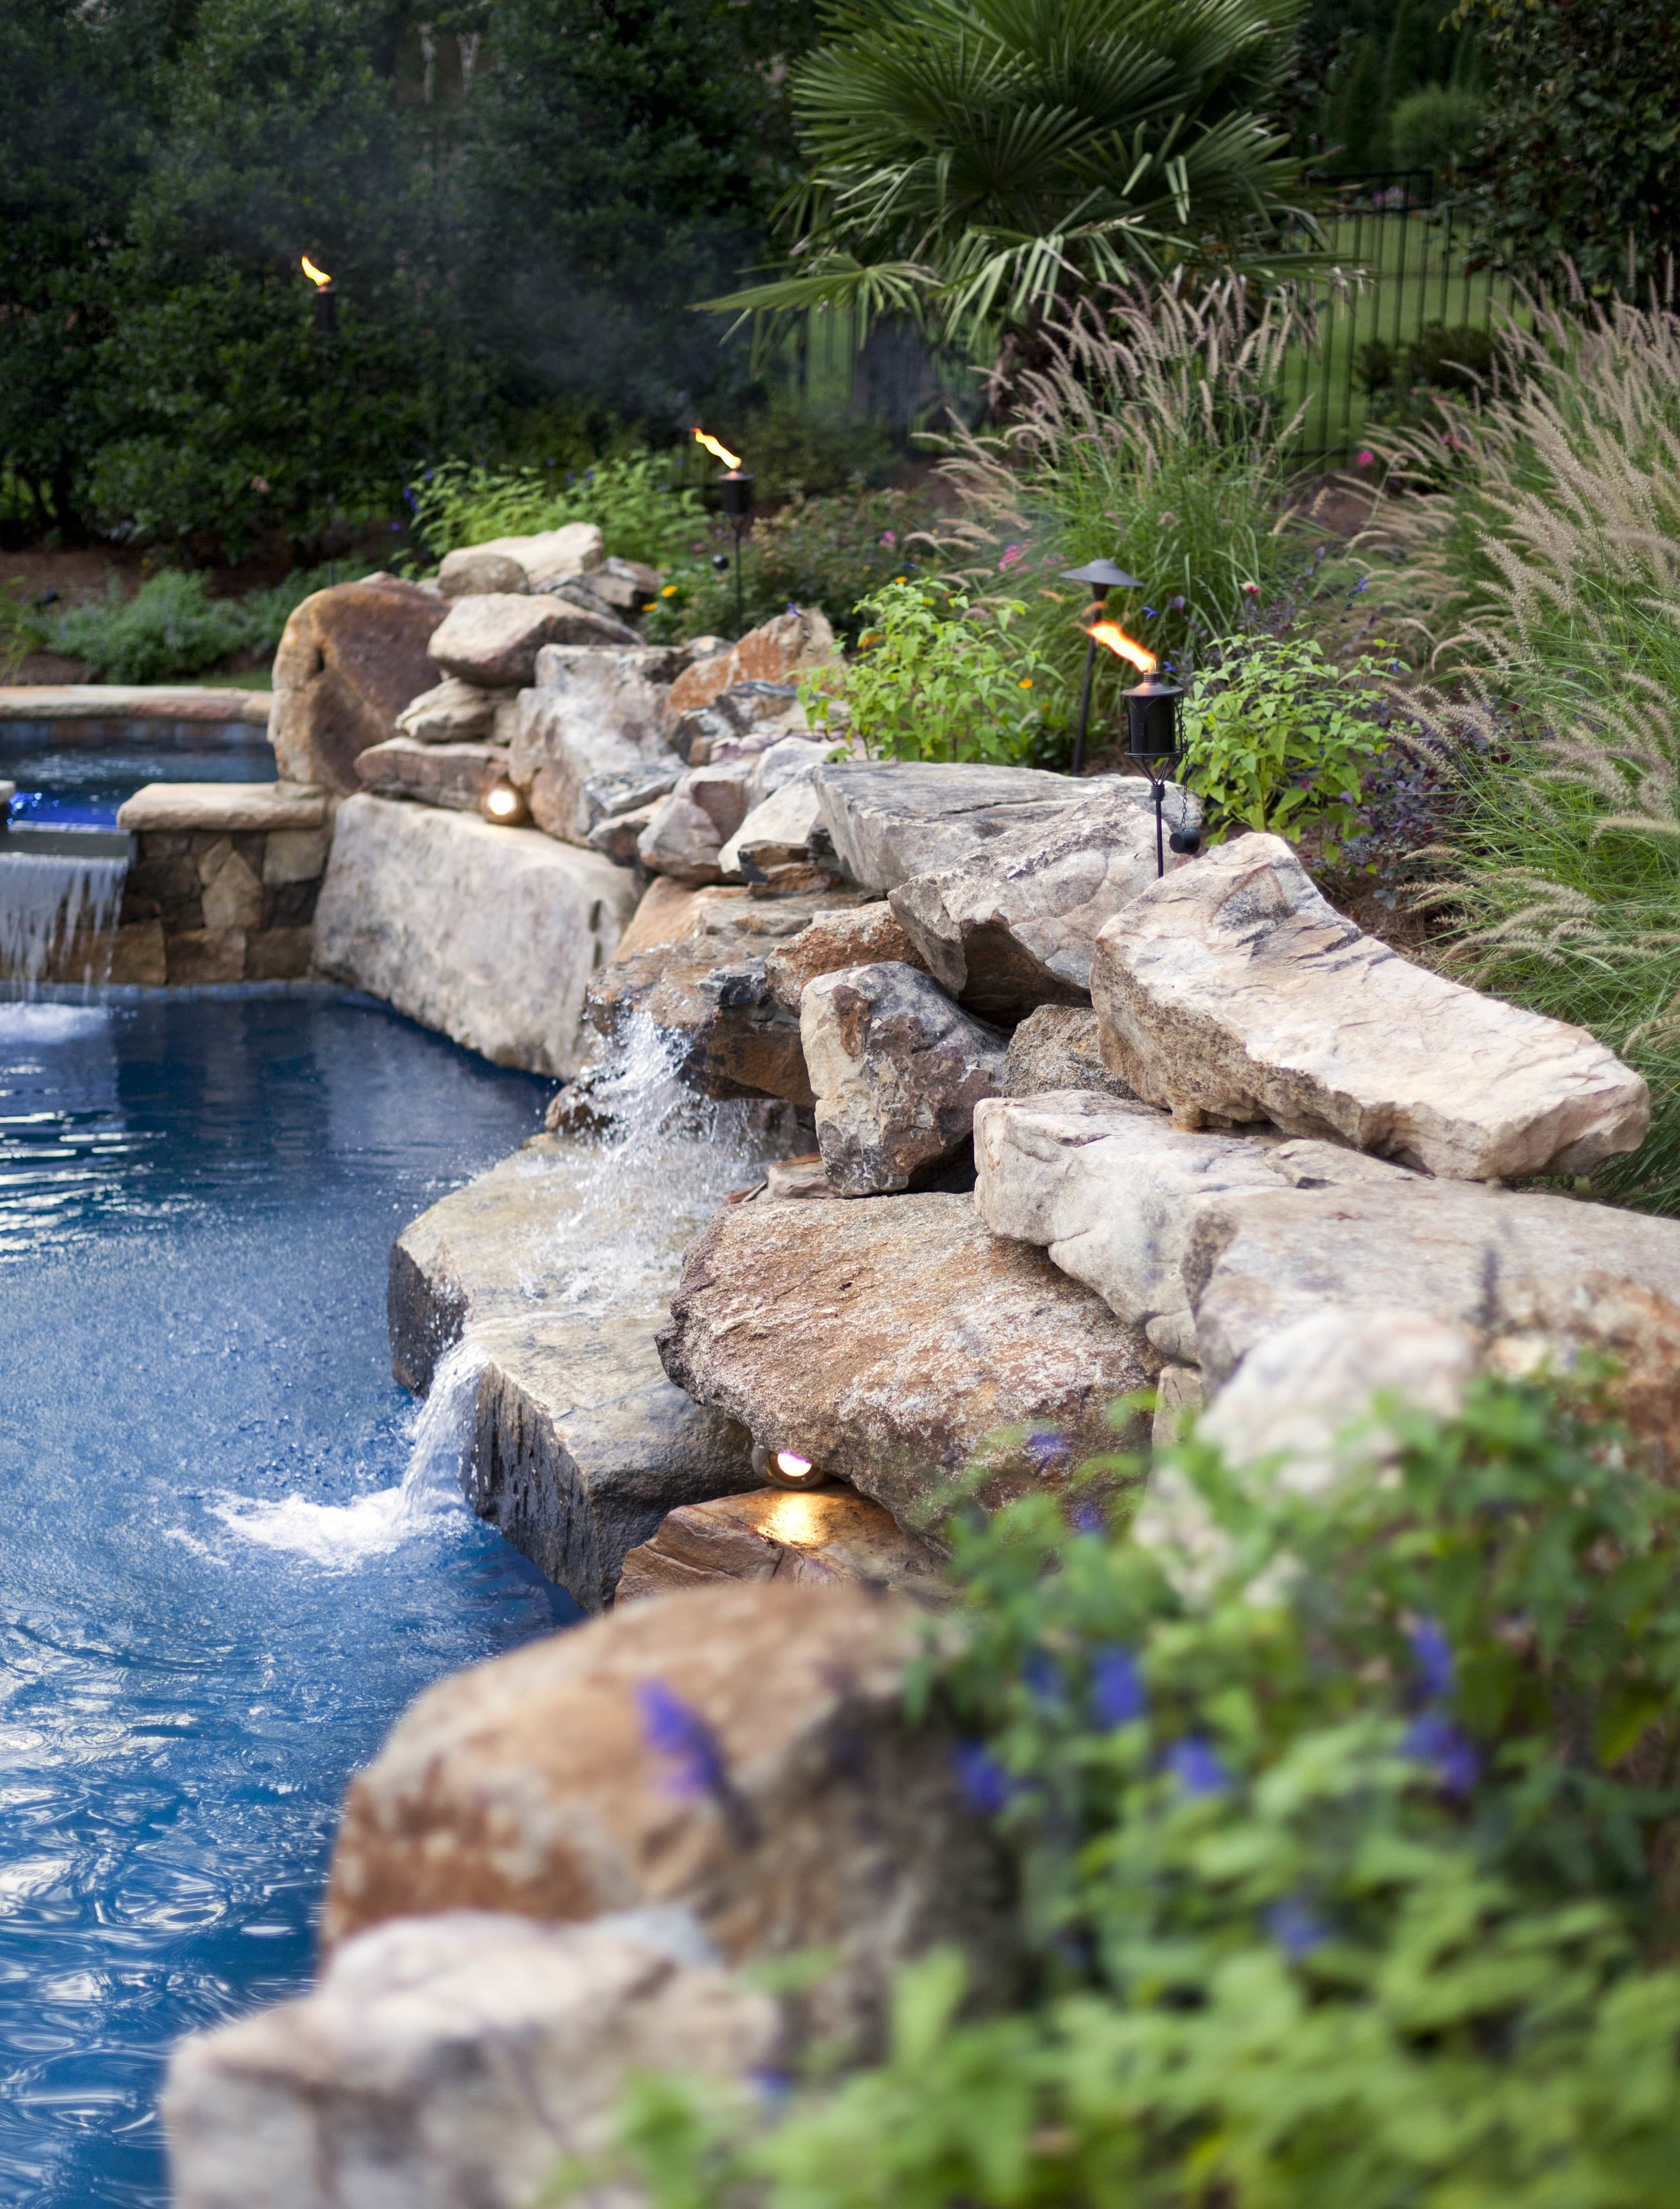 The natural boulders used in this pool, along with the waterfalls, provide a serene and relaxing atmosphere.